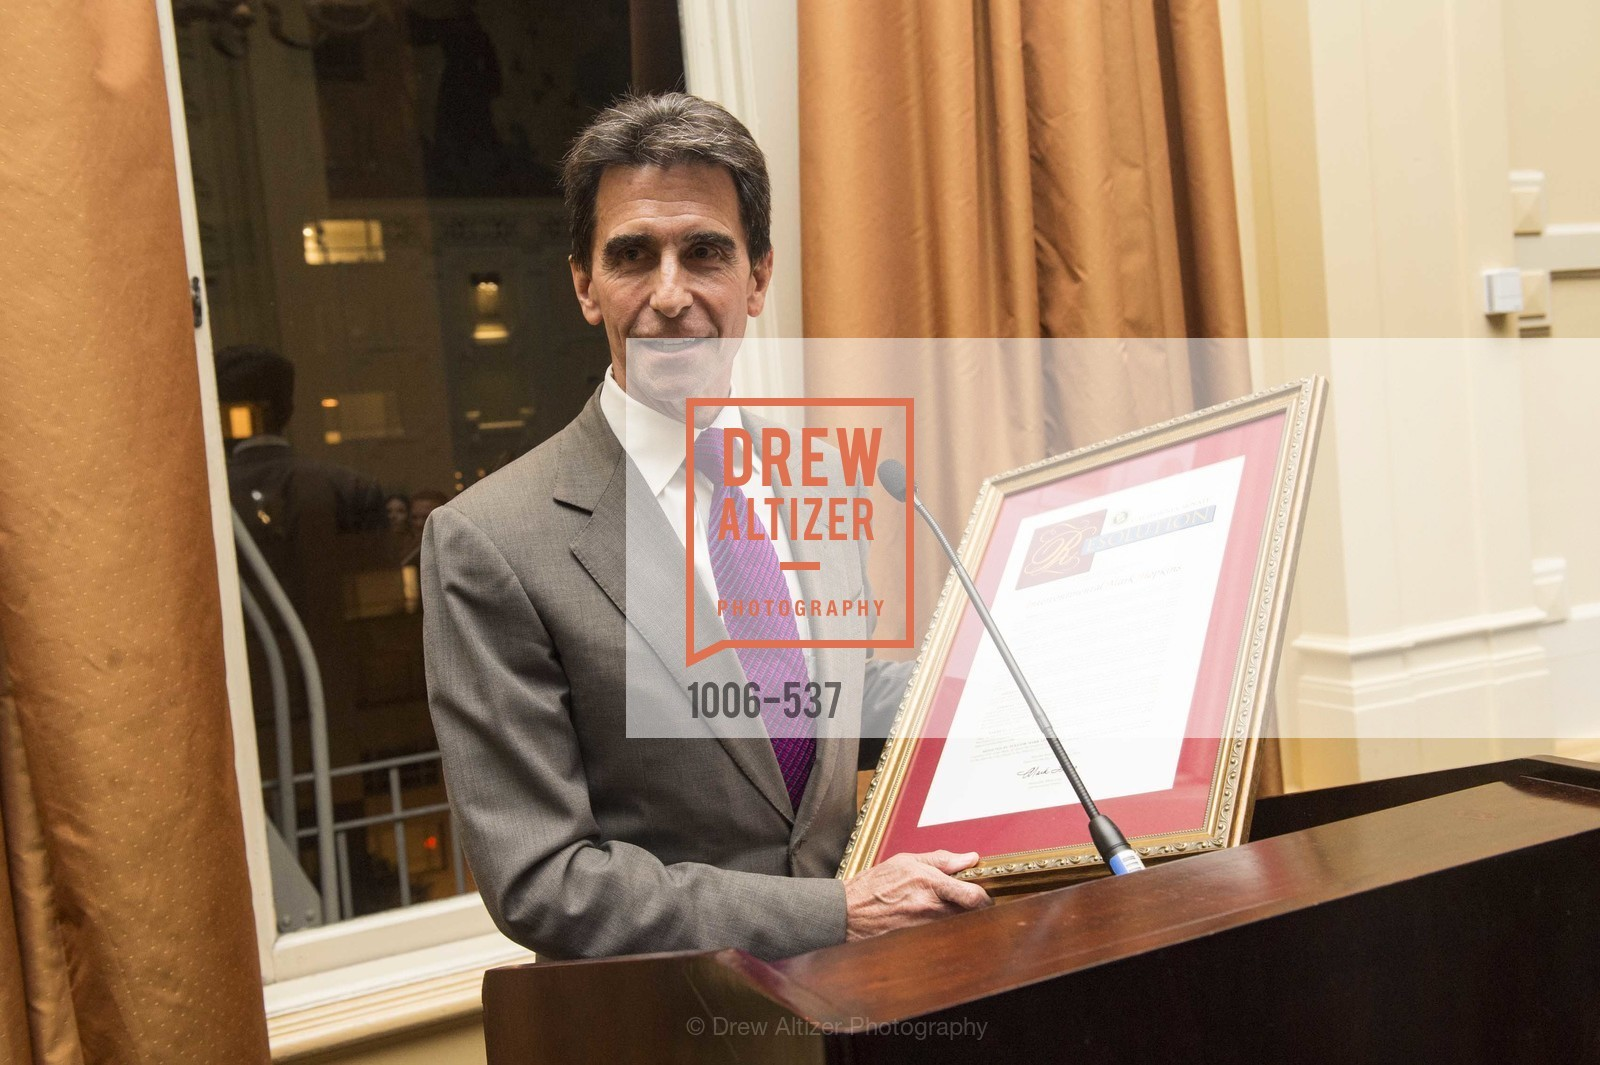 Mark Leno, TOP OF THE MARK'S 75TH Anniversary Party, US, November 7th, 2014,Drew Altizer, Drew Altizer Photography, full-service event agency, private events, San Francisco photographer, photographer California